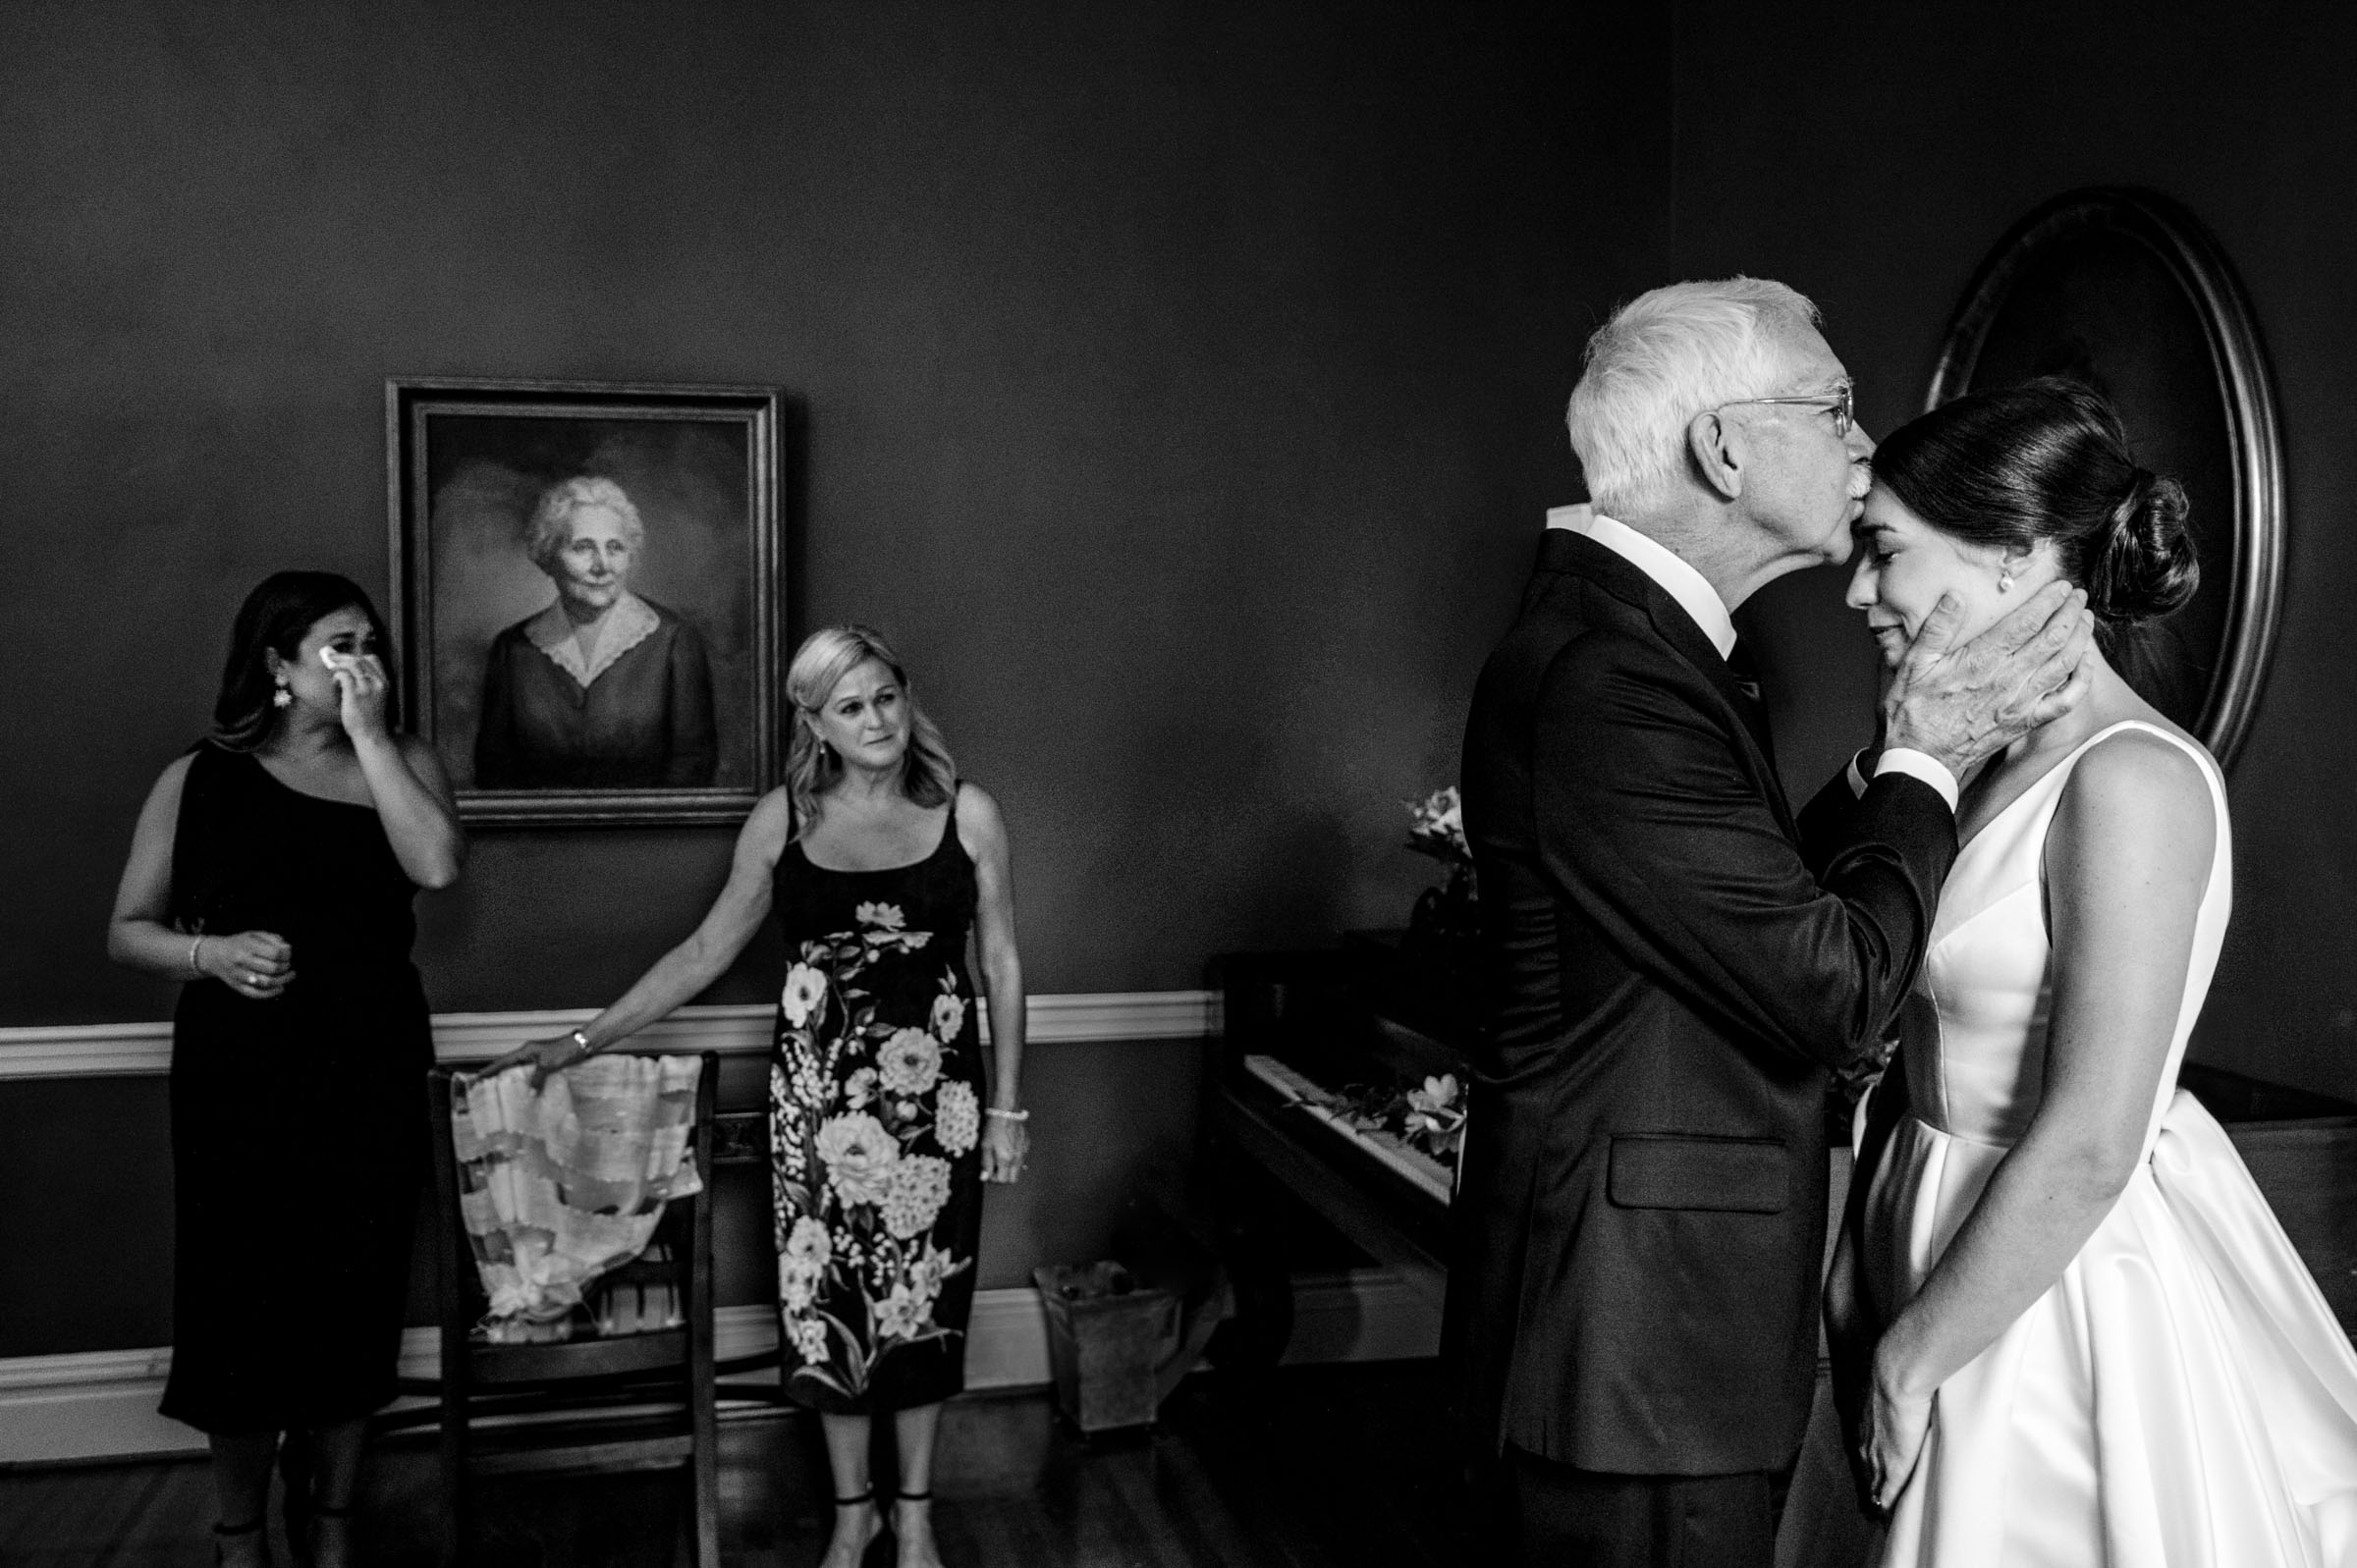 Father kisses bride before wedding by Marissa Joy Photography from Los Angeles